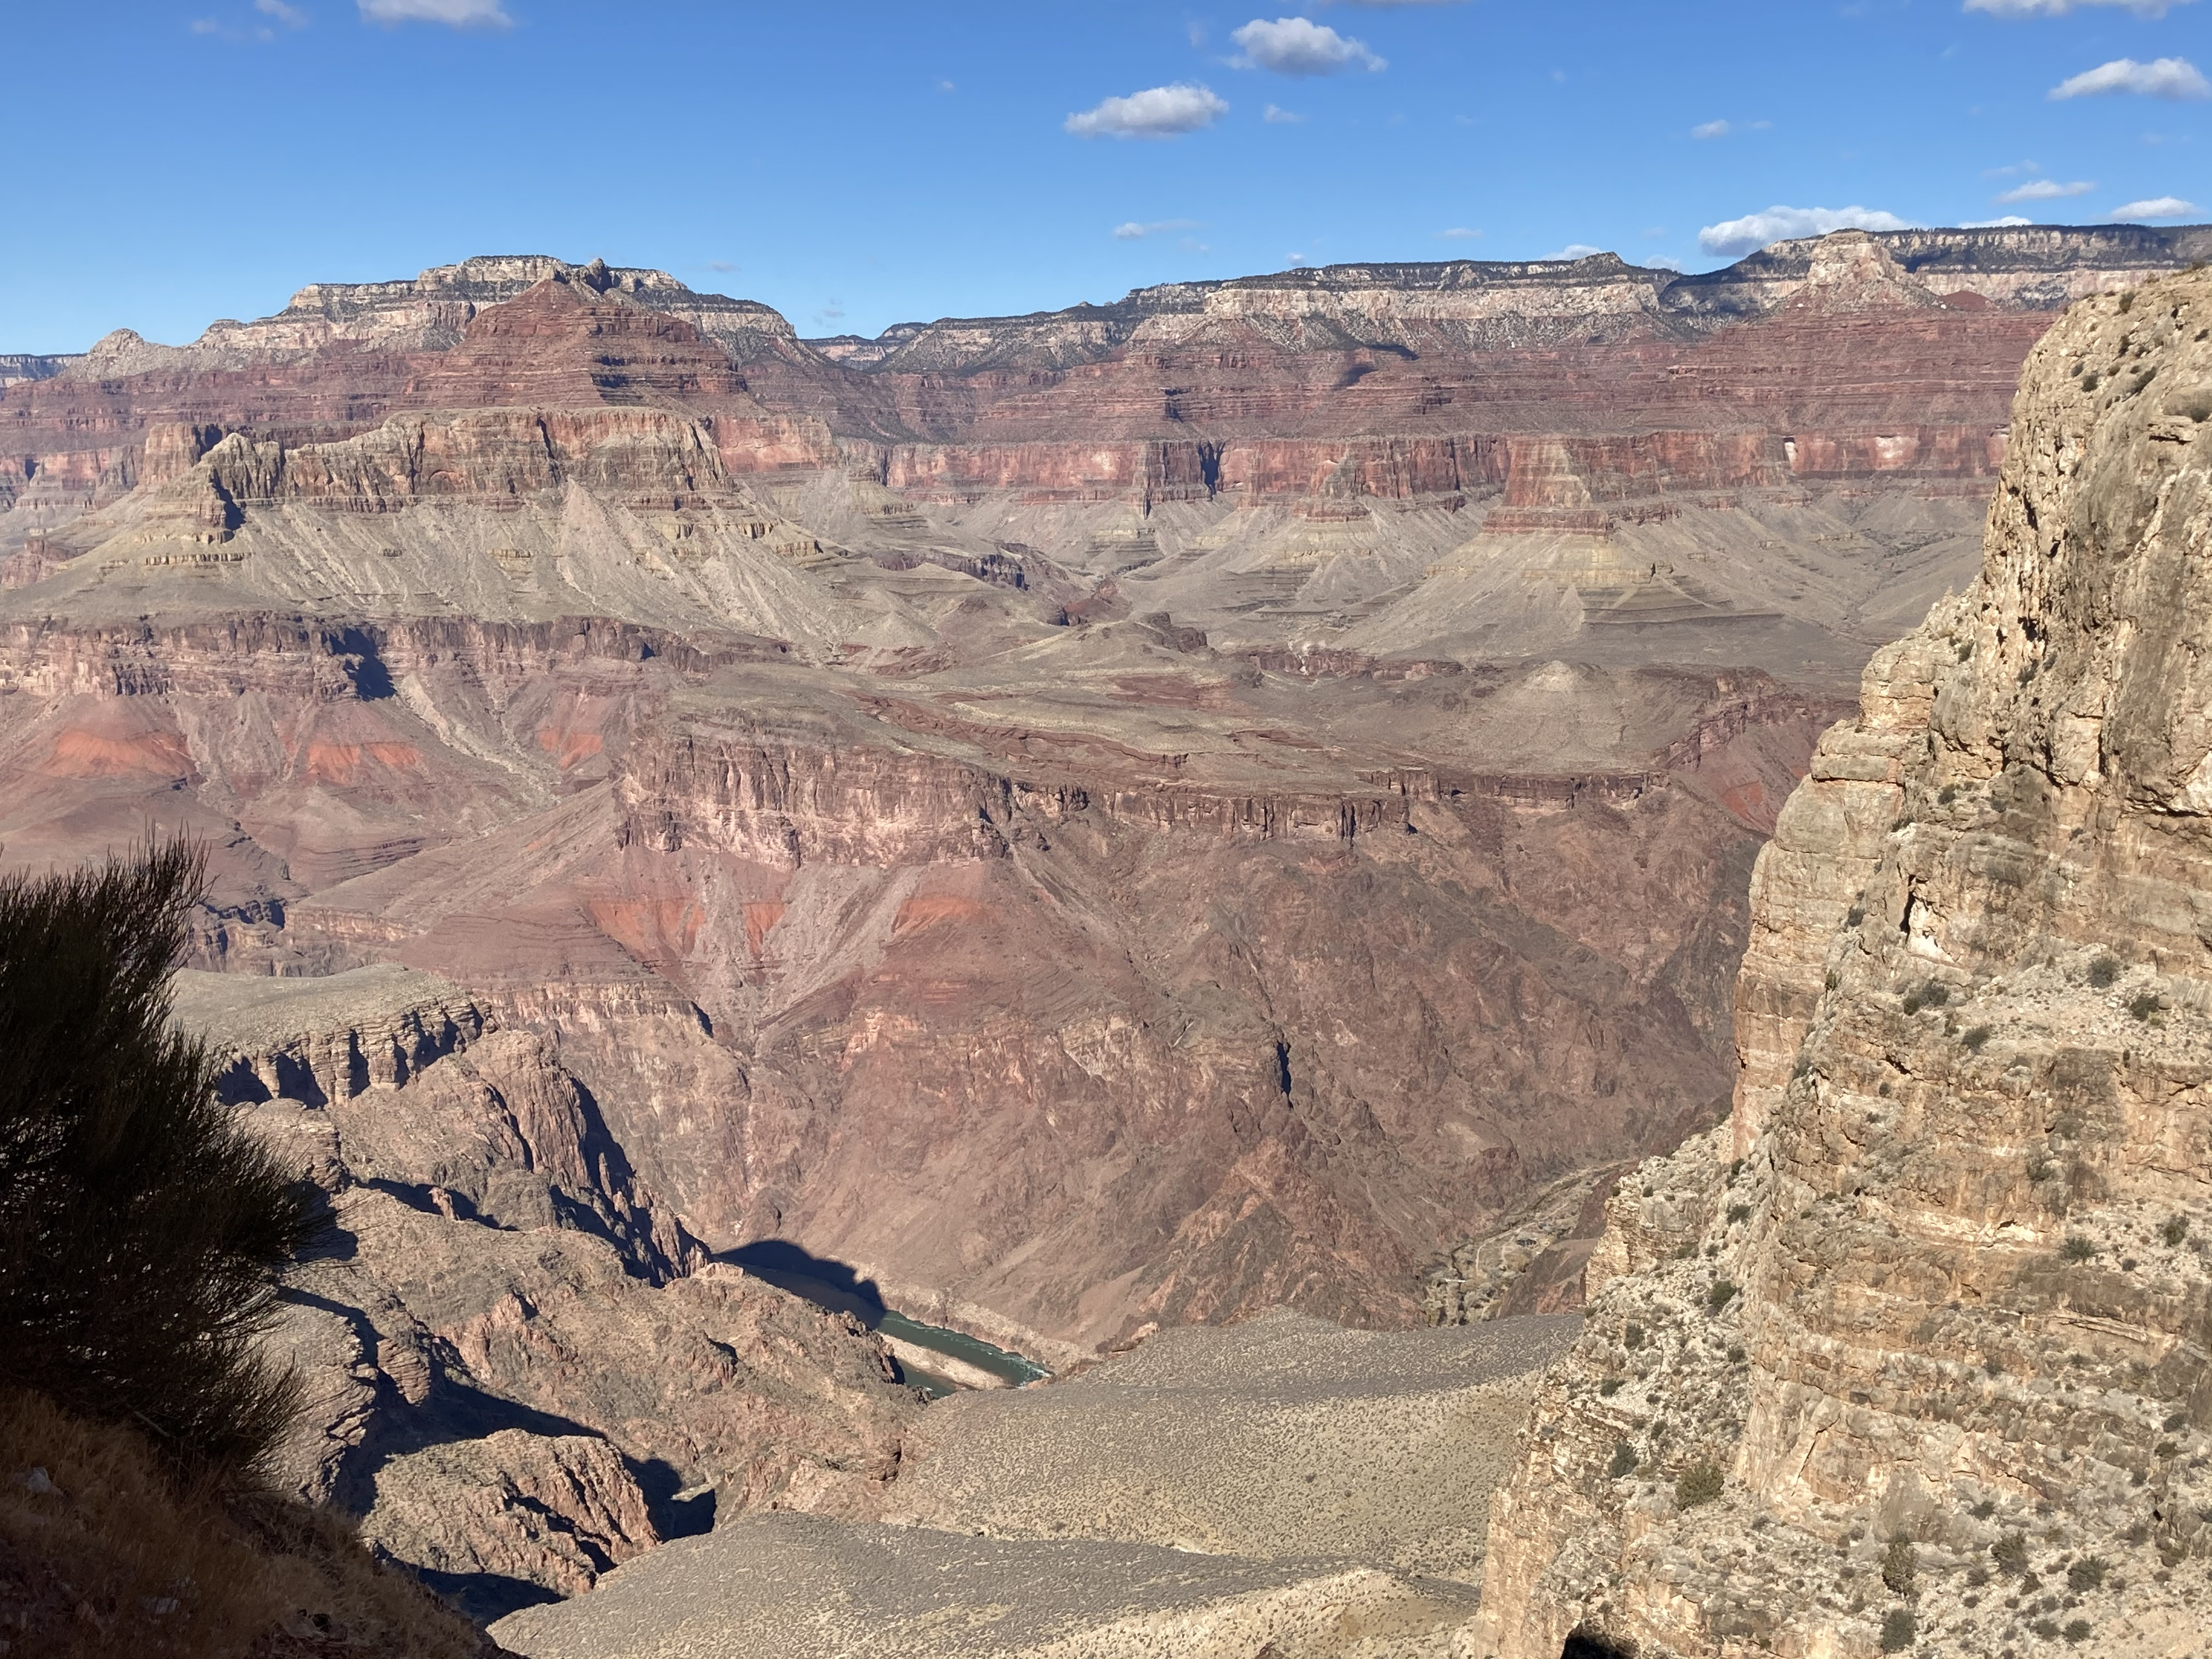 A view of the Colorado River from the South Kaibab Trail in Grand Canyon National Park. NPS photo.